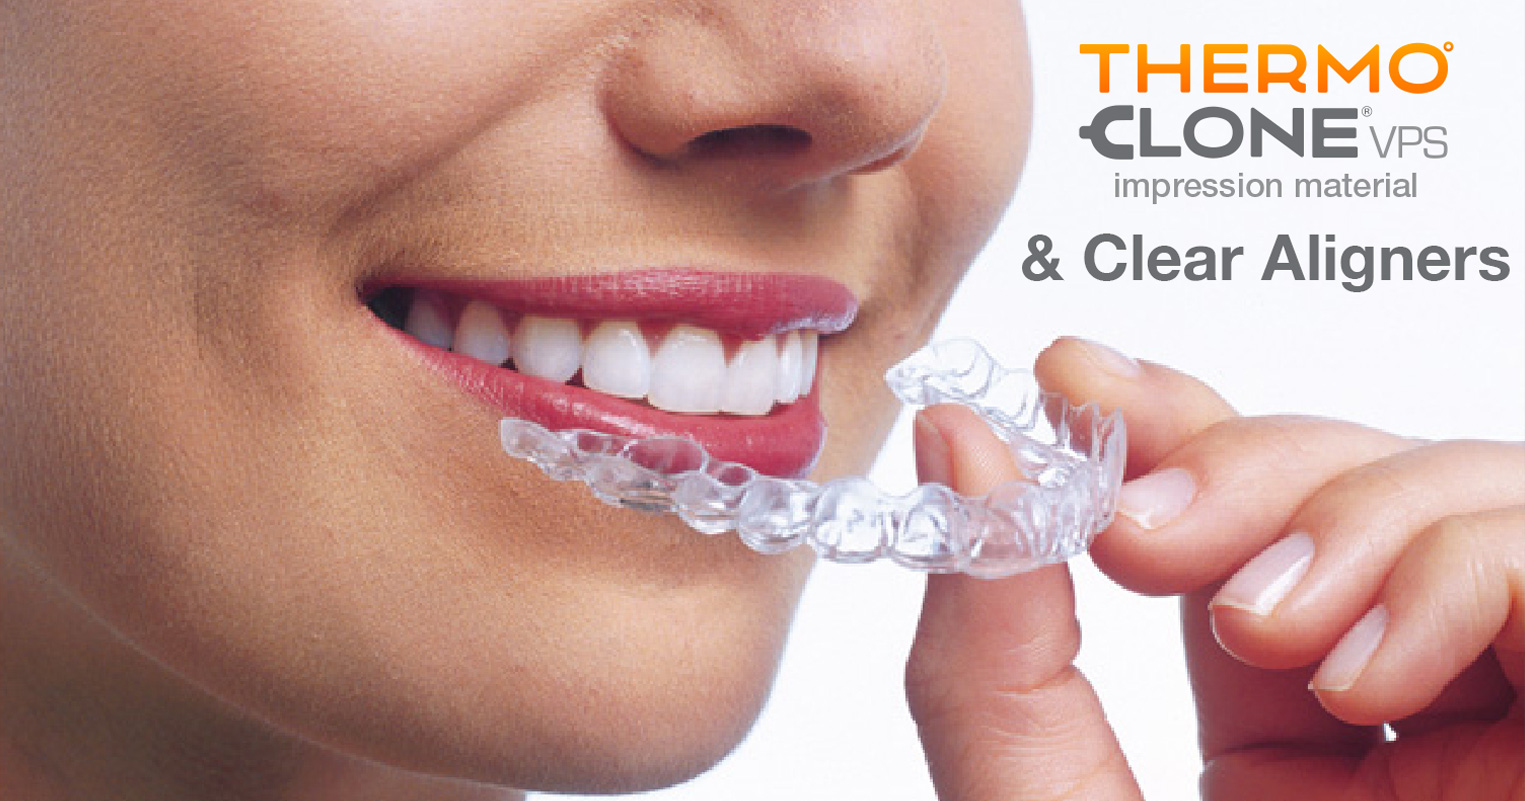 ThermoClone and Clear Aligners